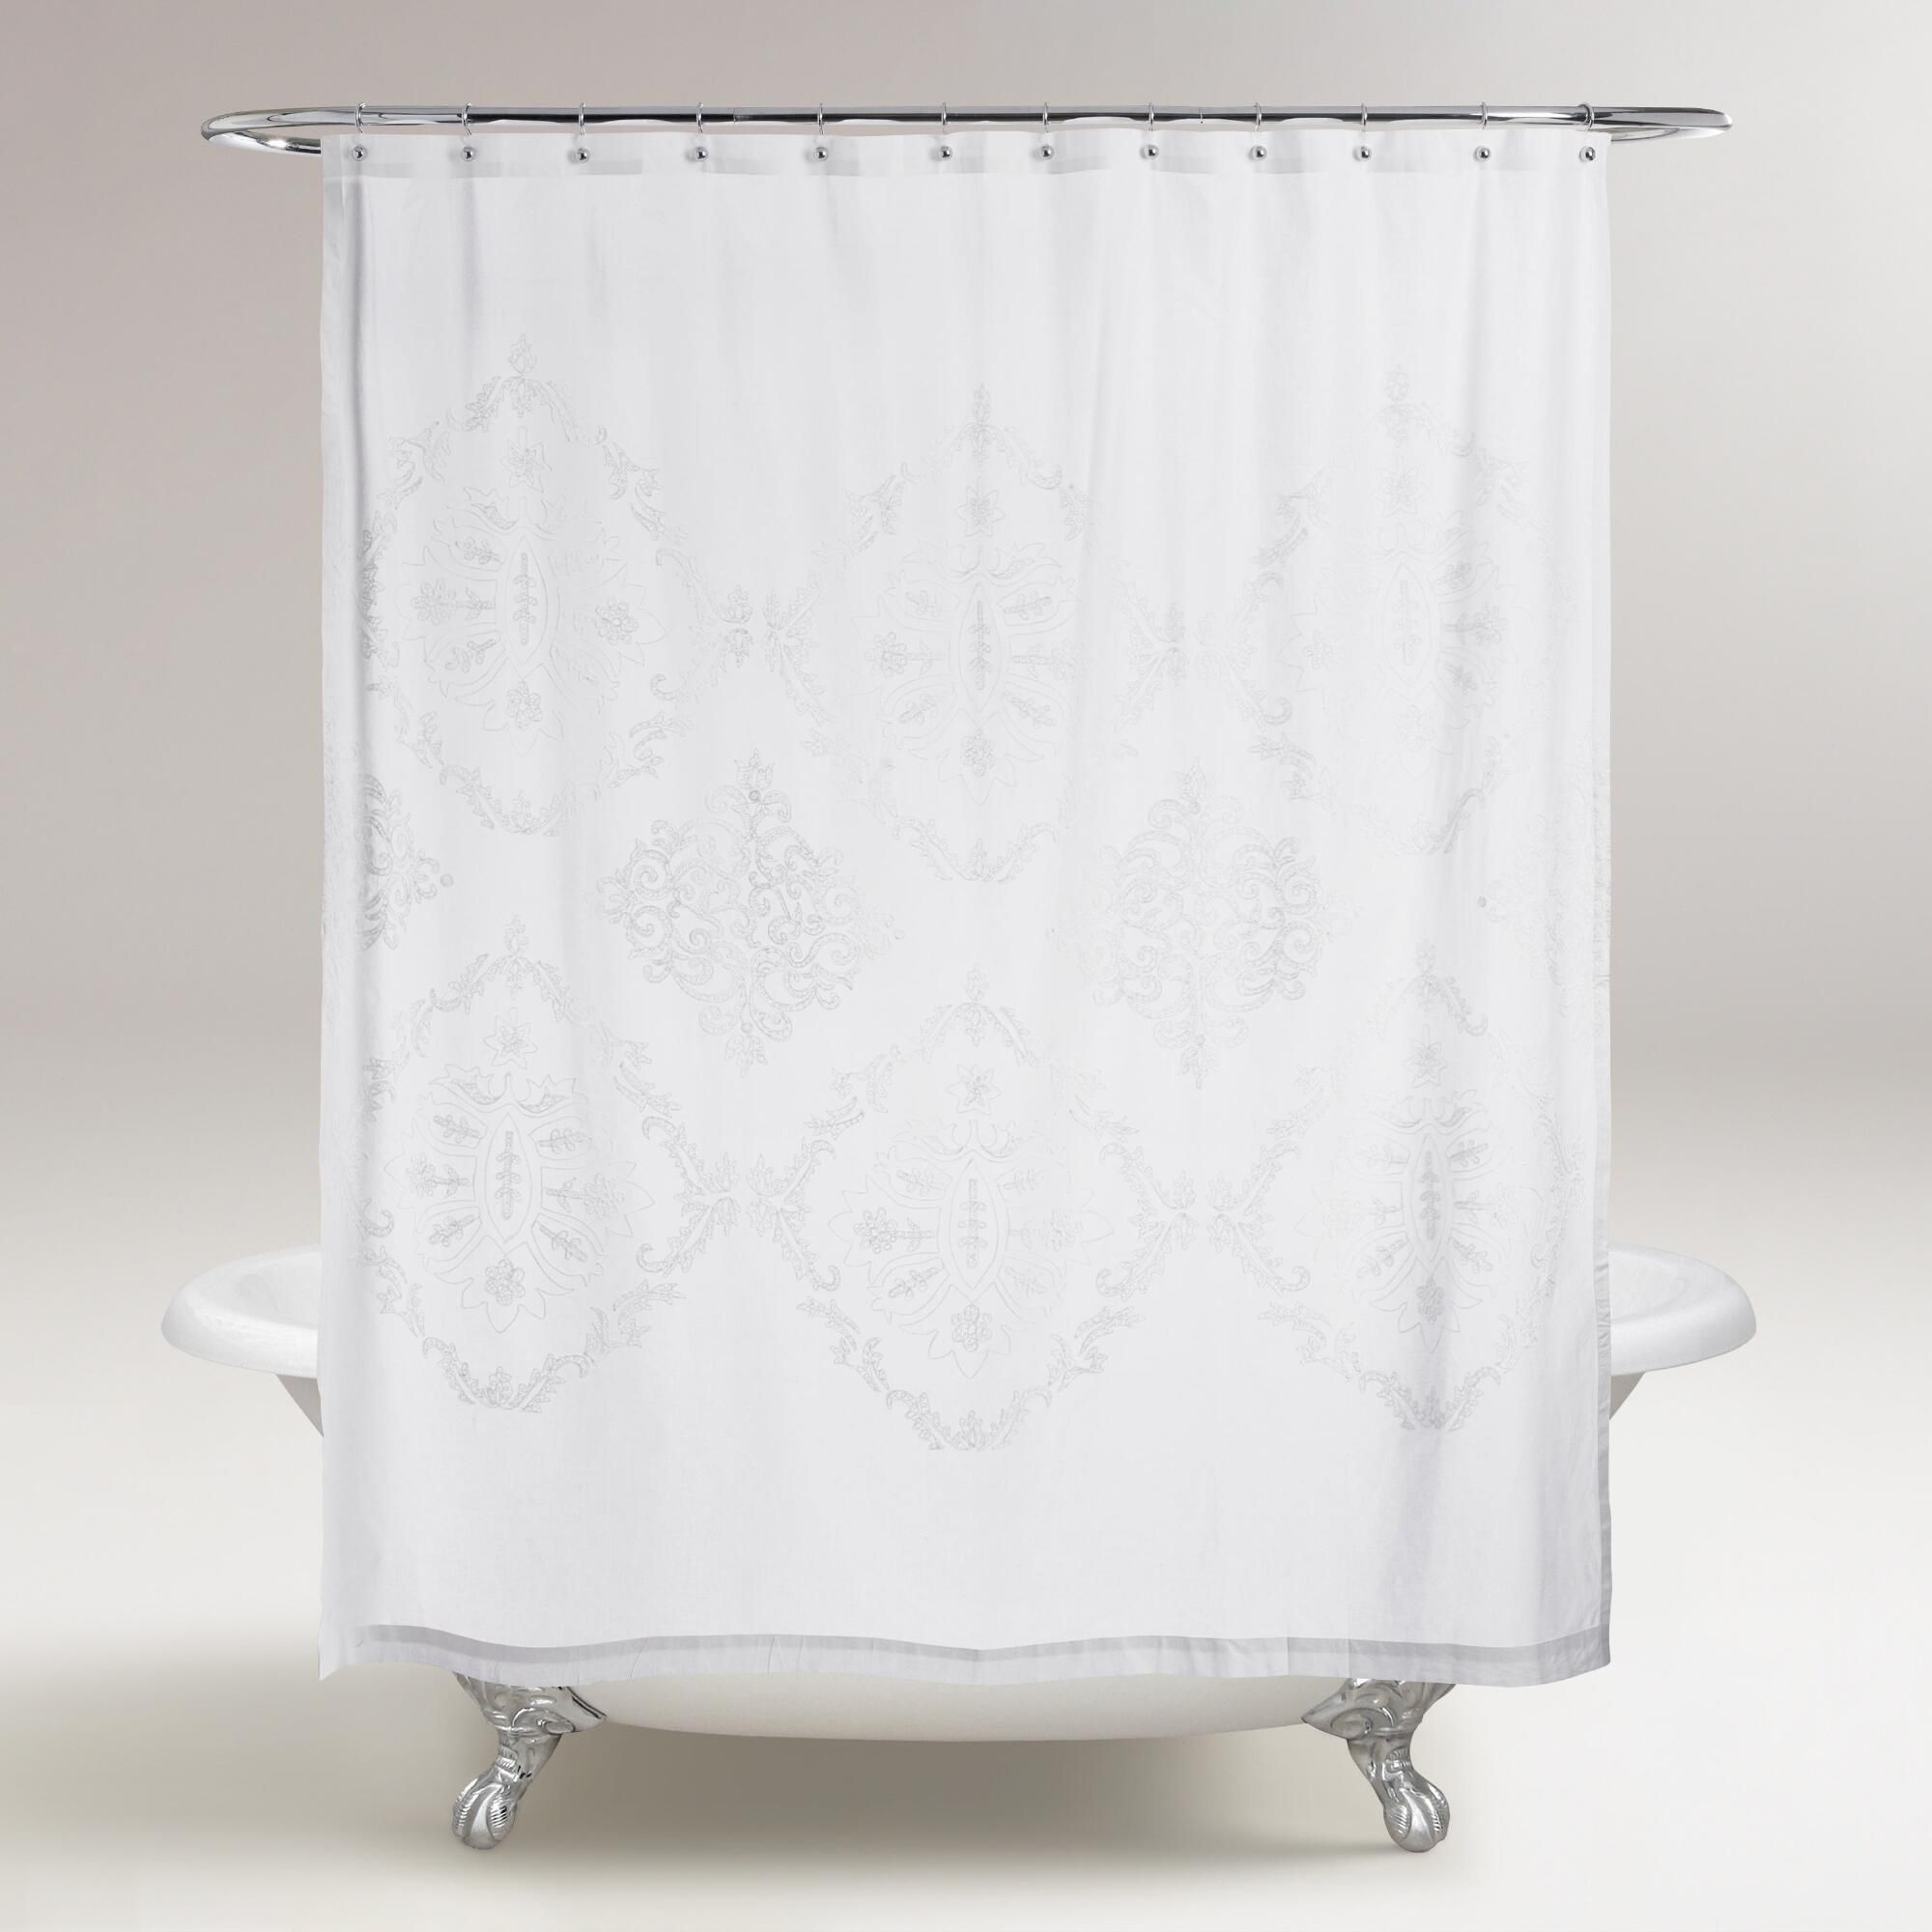 Simple Yet Sophisticated Our 100 Cotton Shower Curtain Features